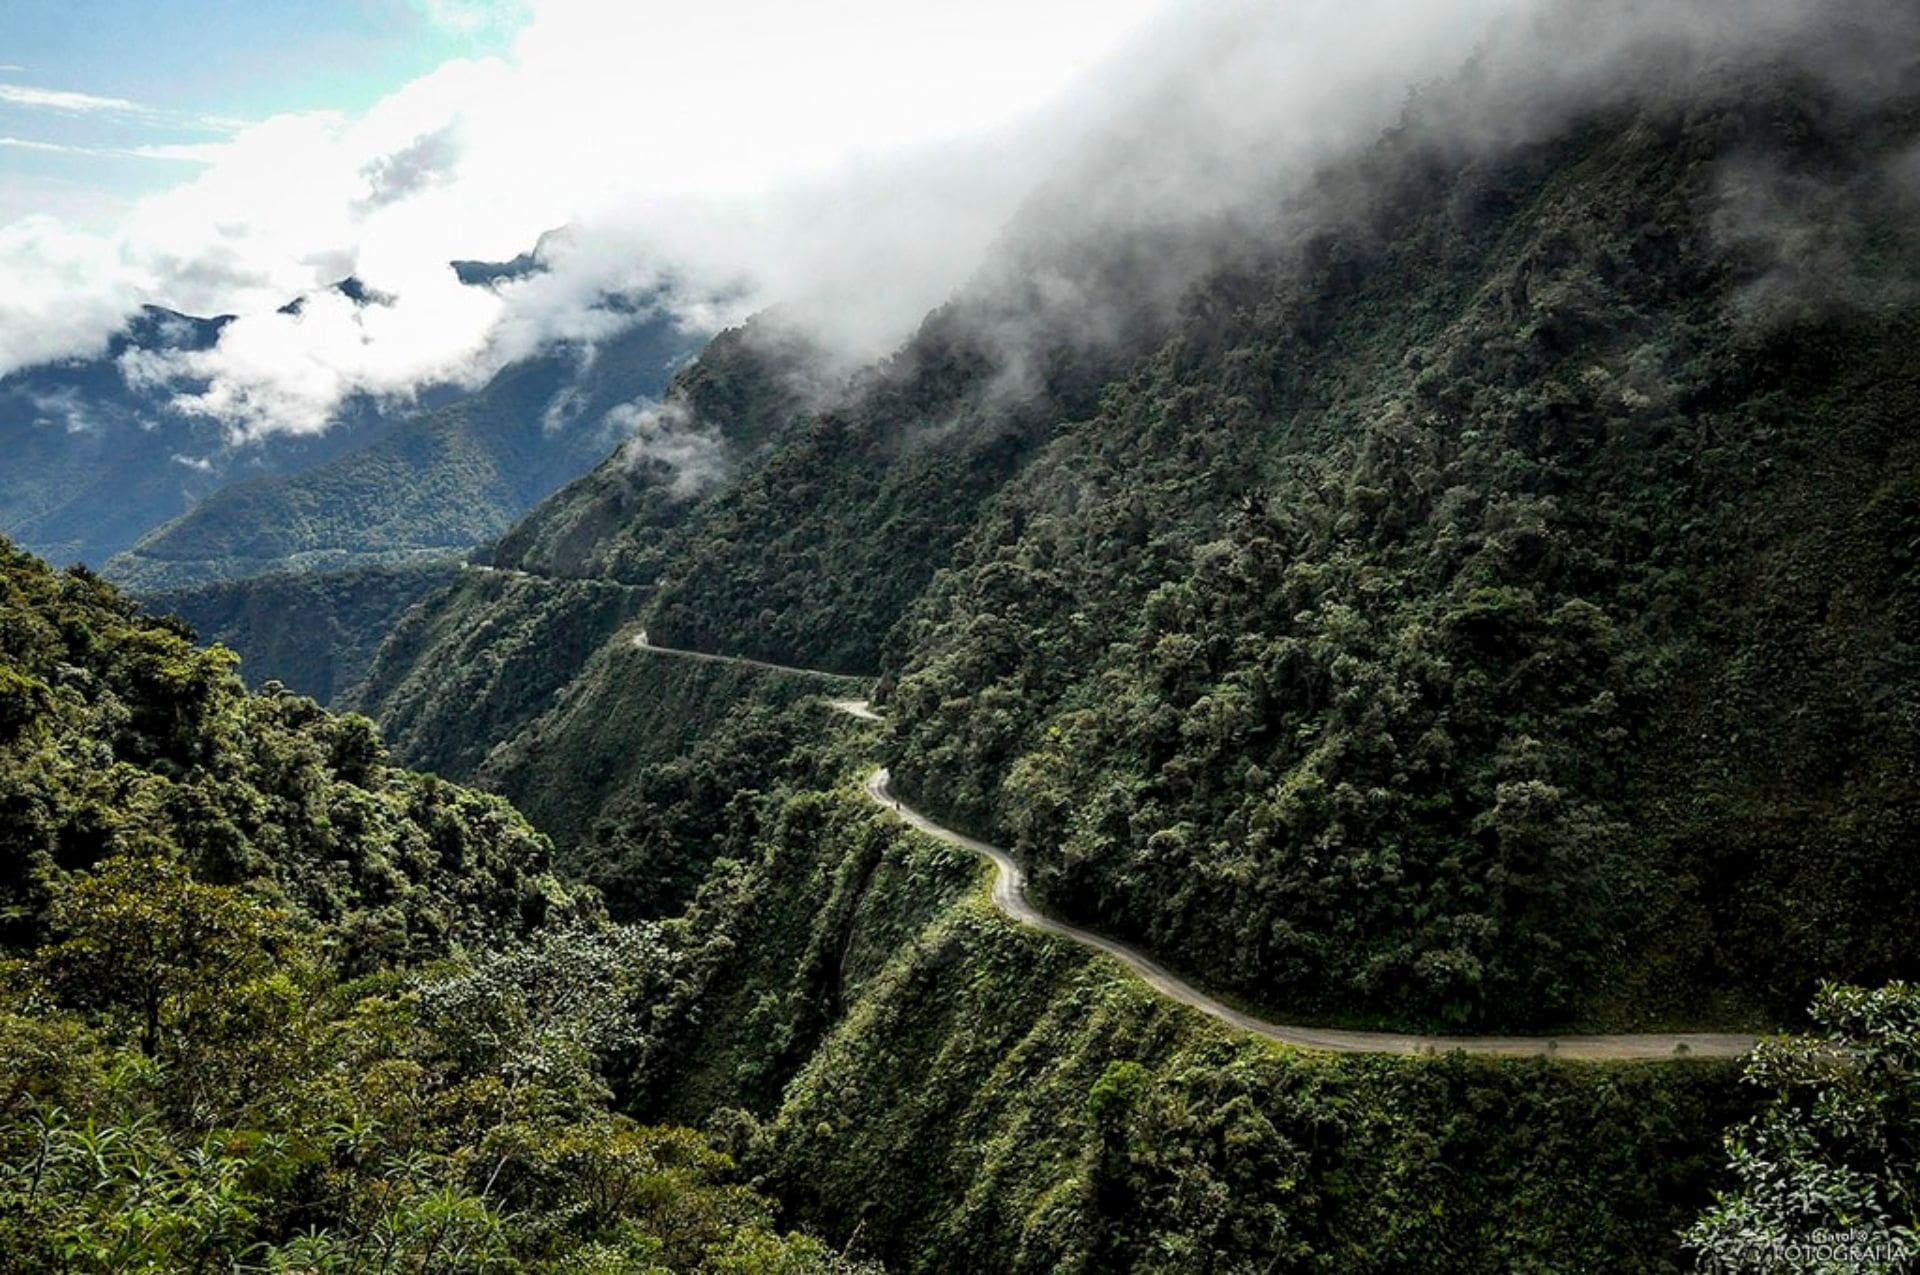 dangerous-road-running-through-mountainous-green-landscape-death-road-bolivia